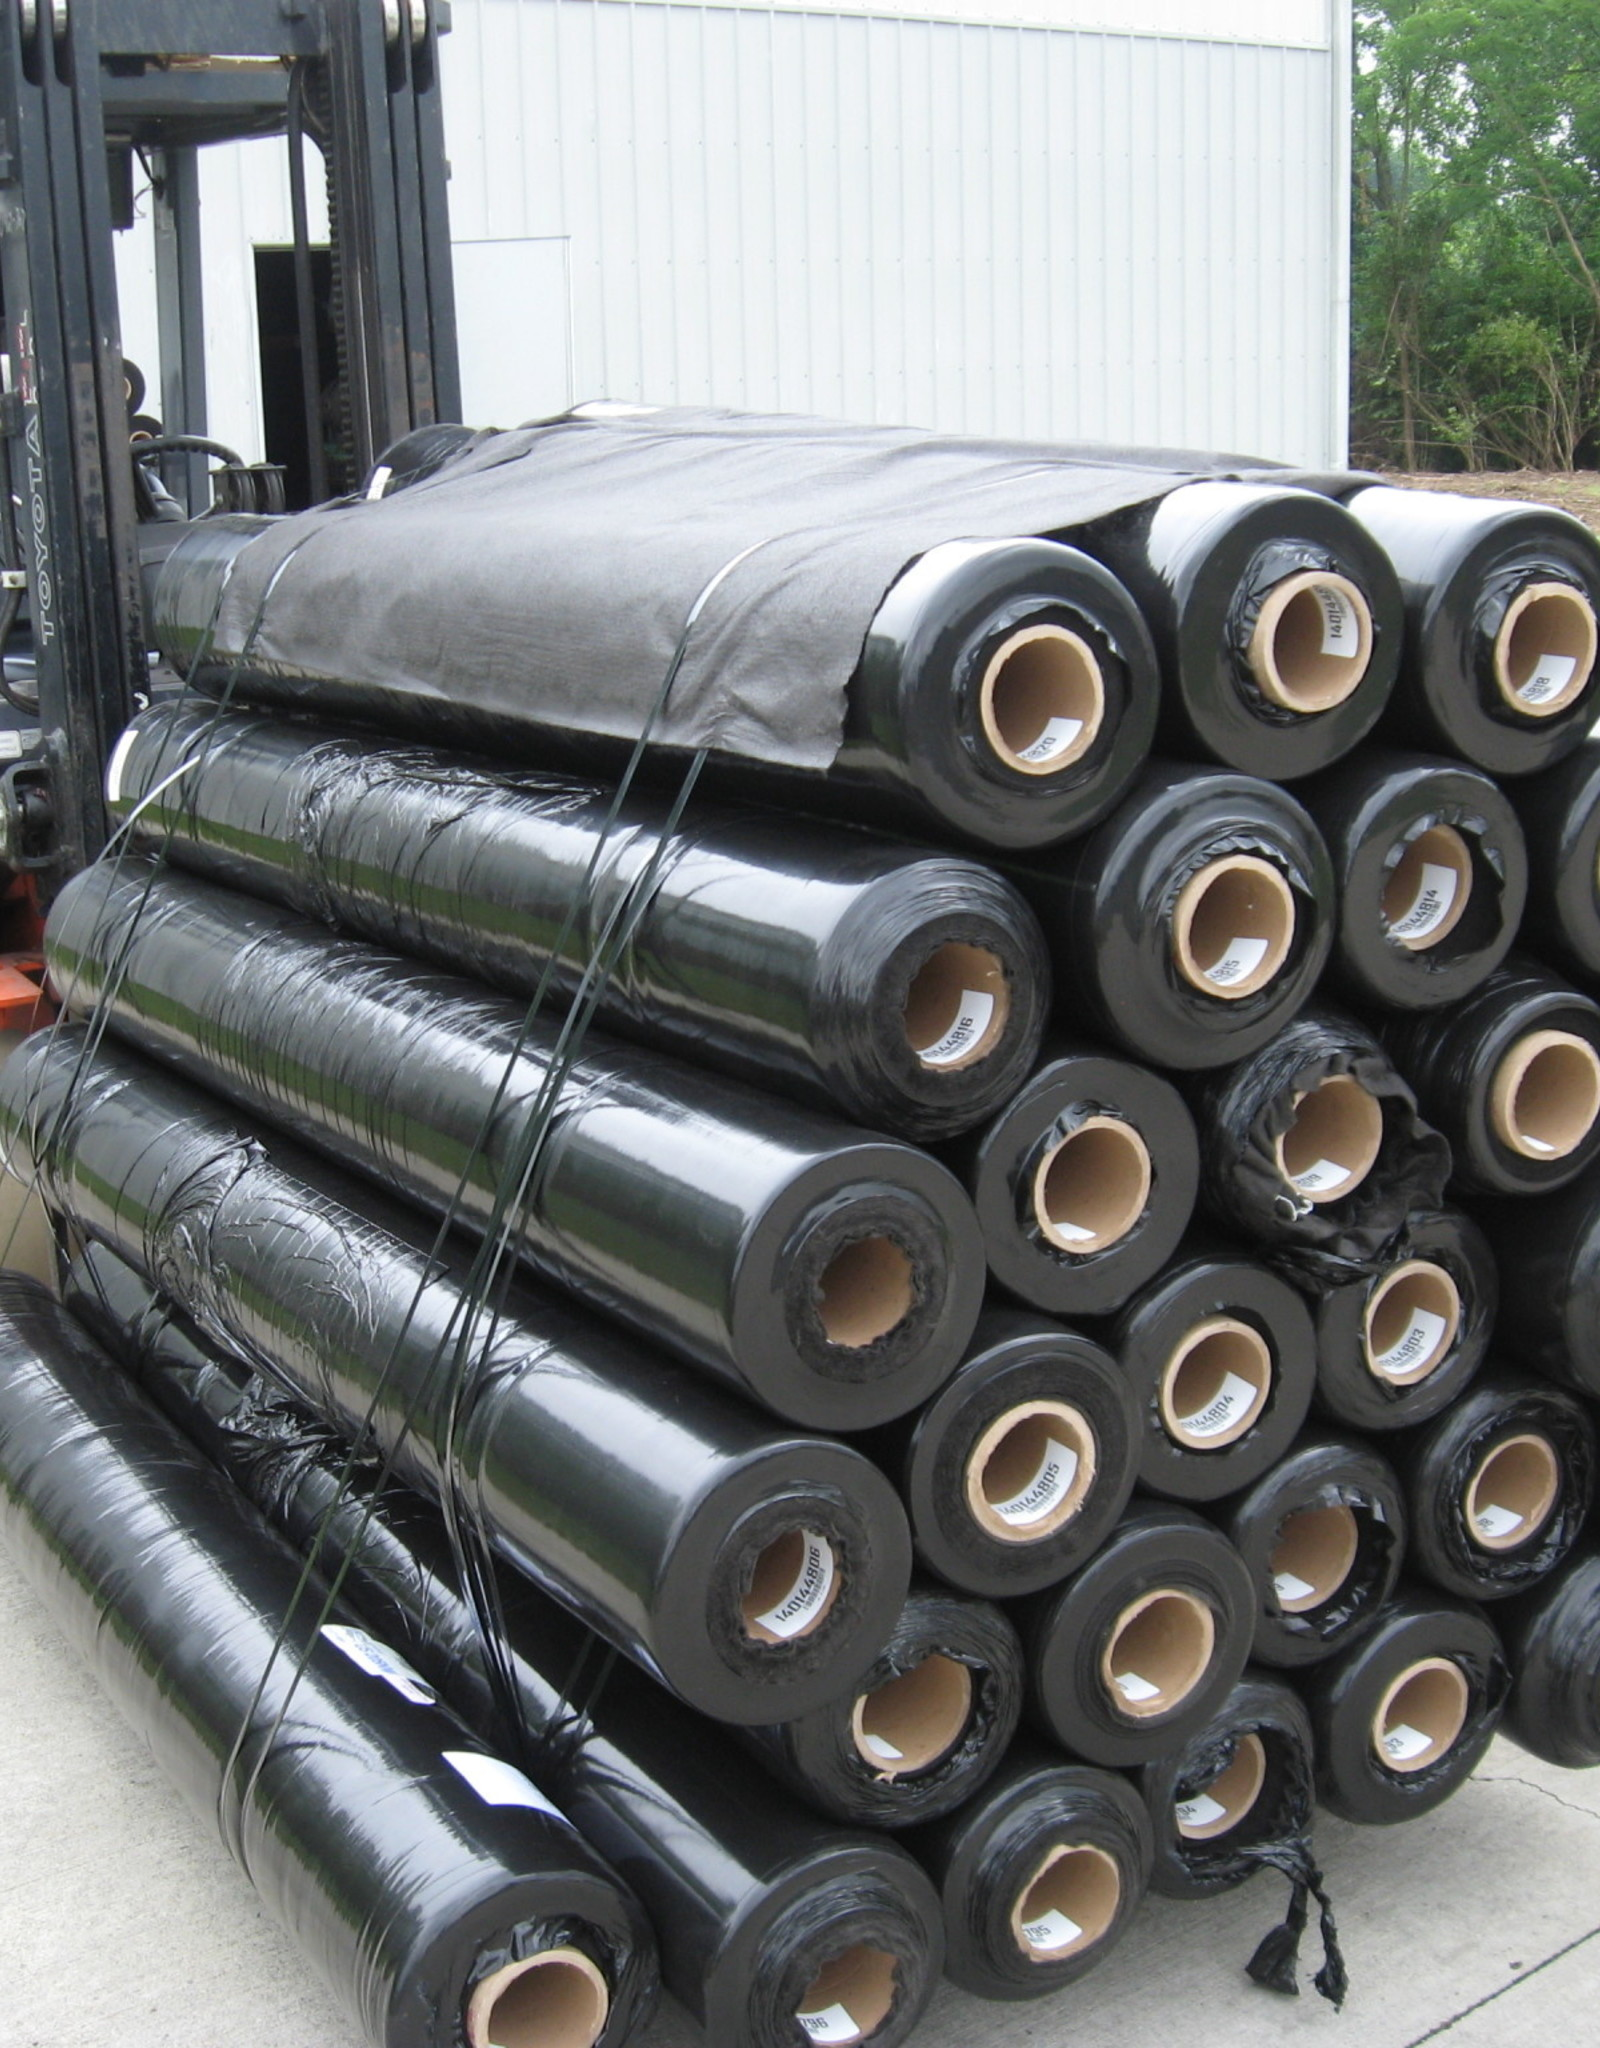 GT-175,  SZ 15' x 300' - Geotextile Fabric 7.5 oz. Non Woven, Type 2,  TXDOT Approved